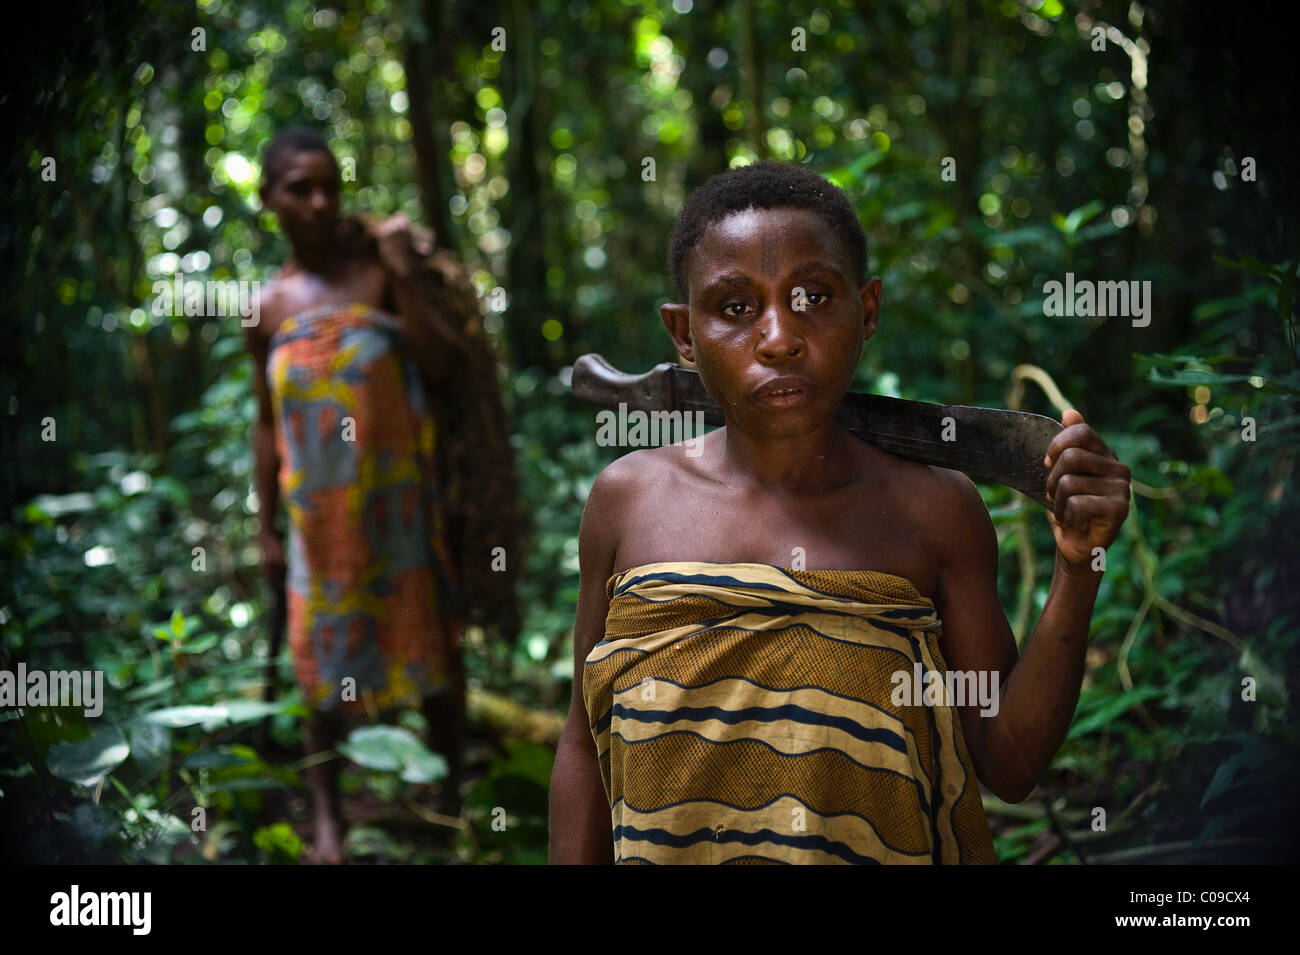 Women of a tribe of pygmies. - Stock Image